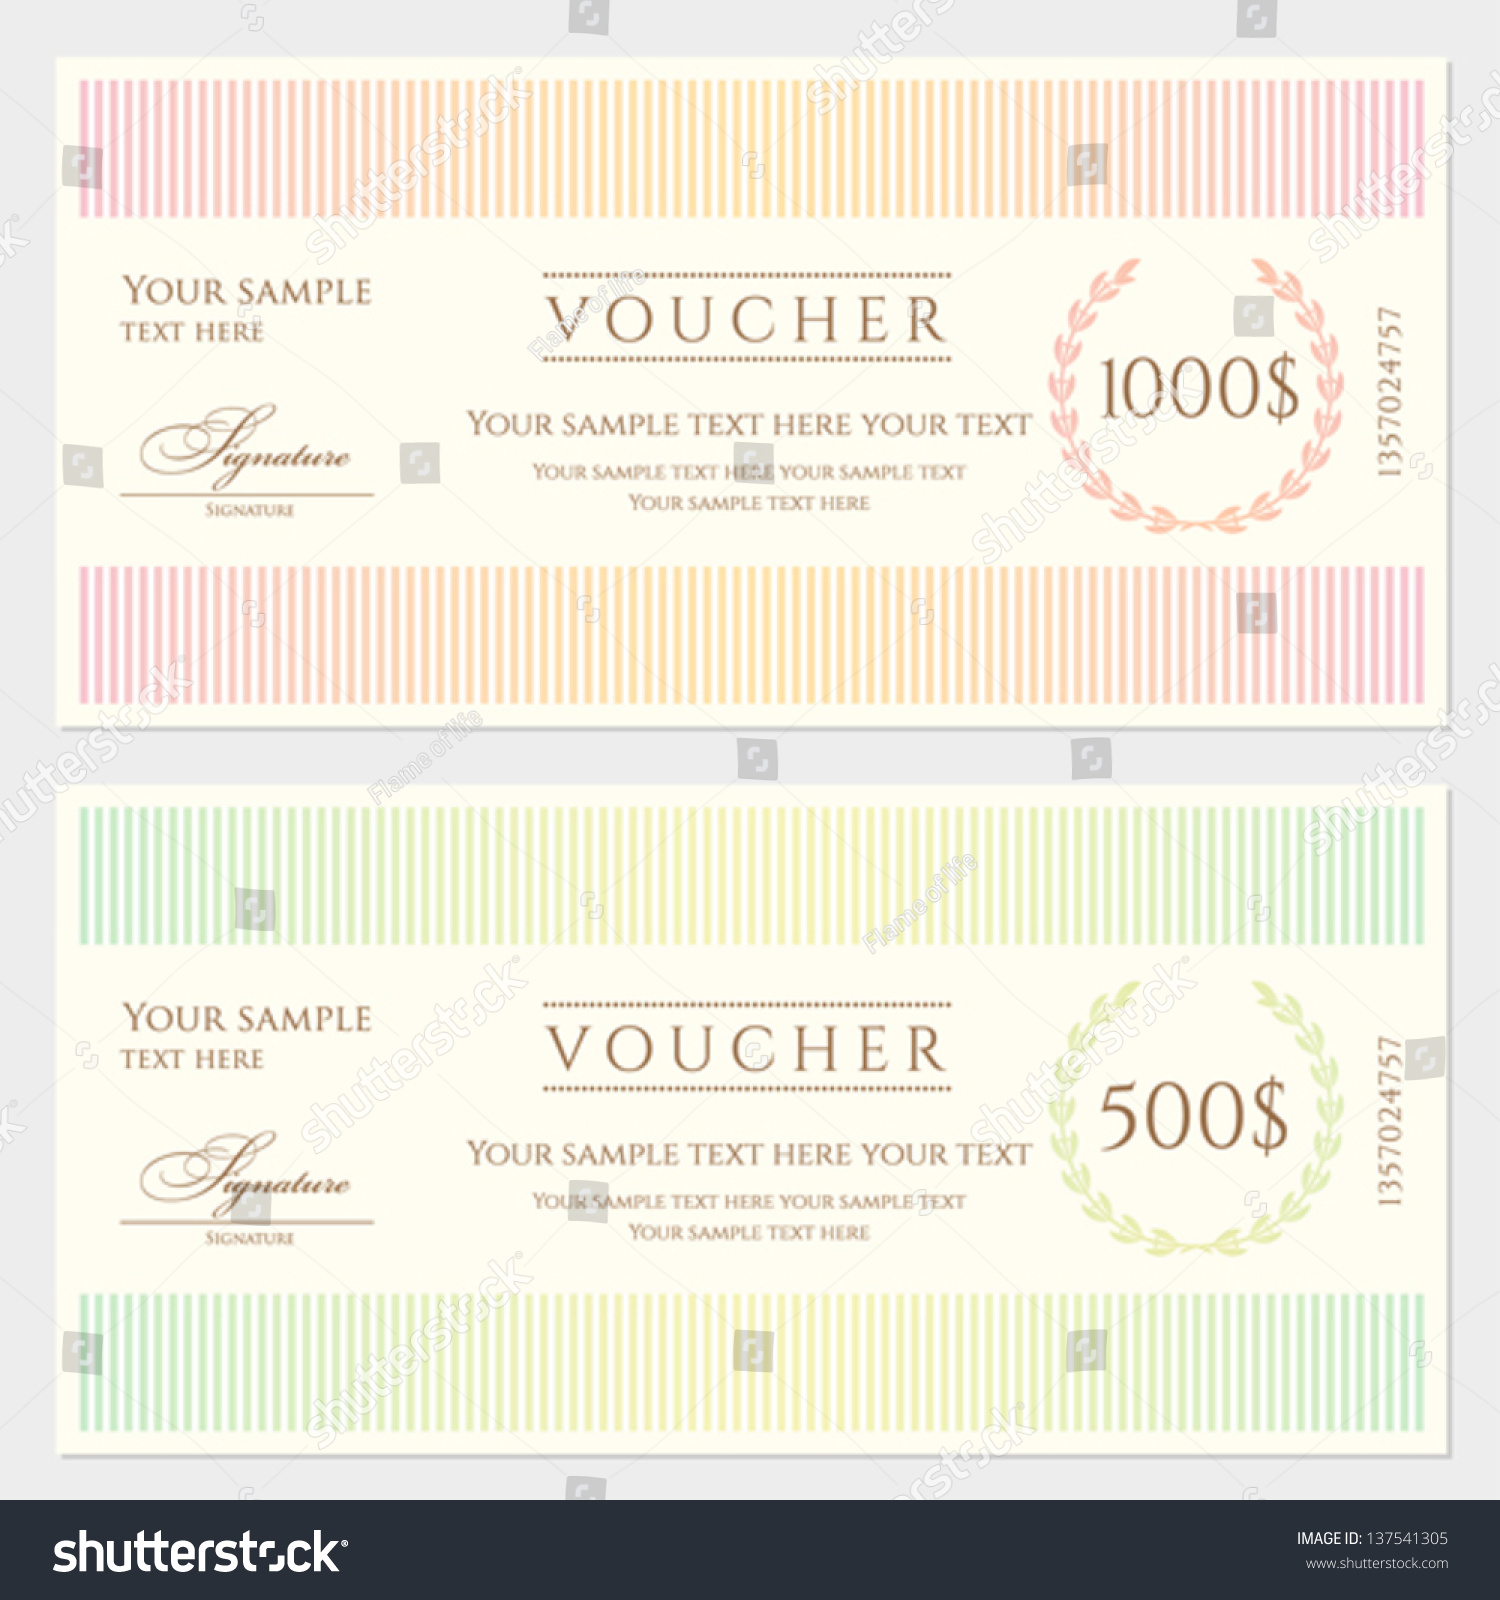 Voucher Certificate Template sales contact sheet template – Voucher Certificate Template